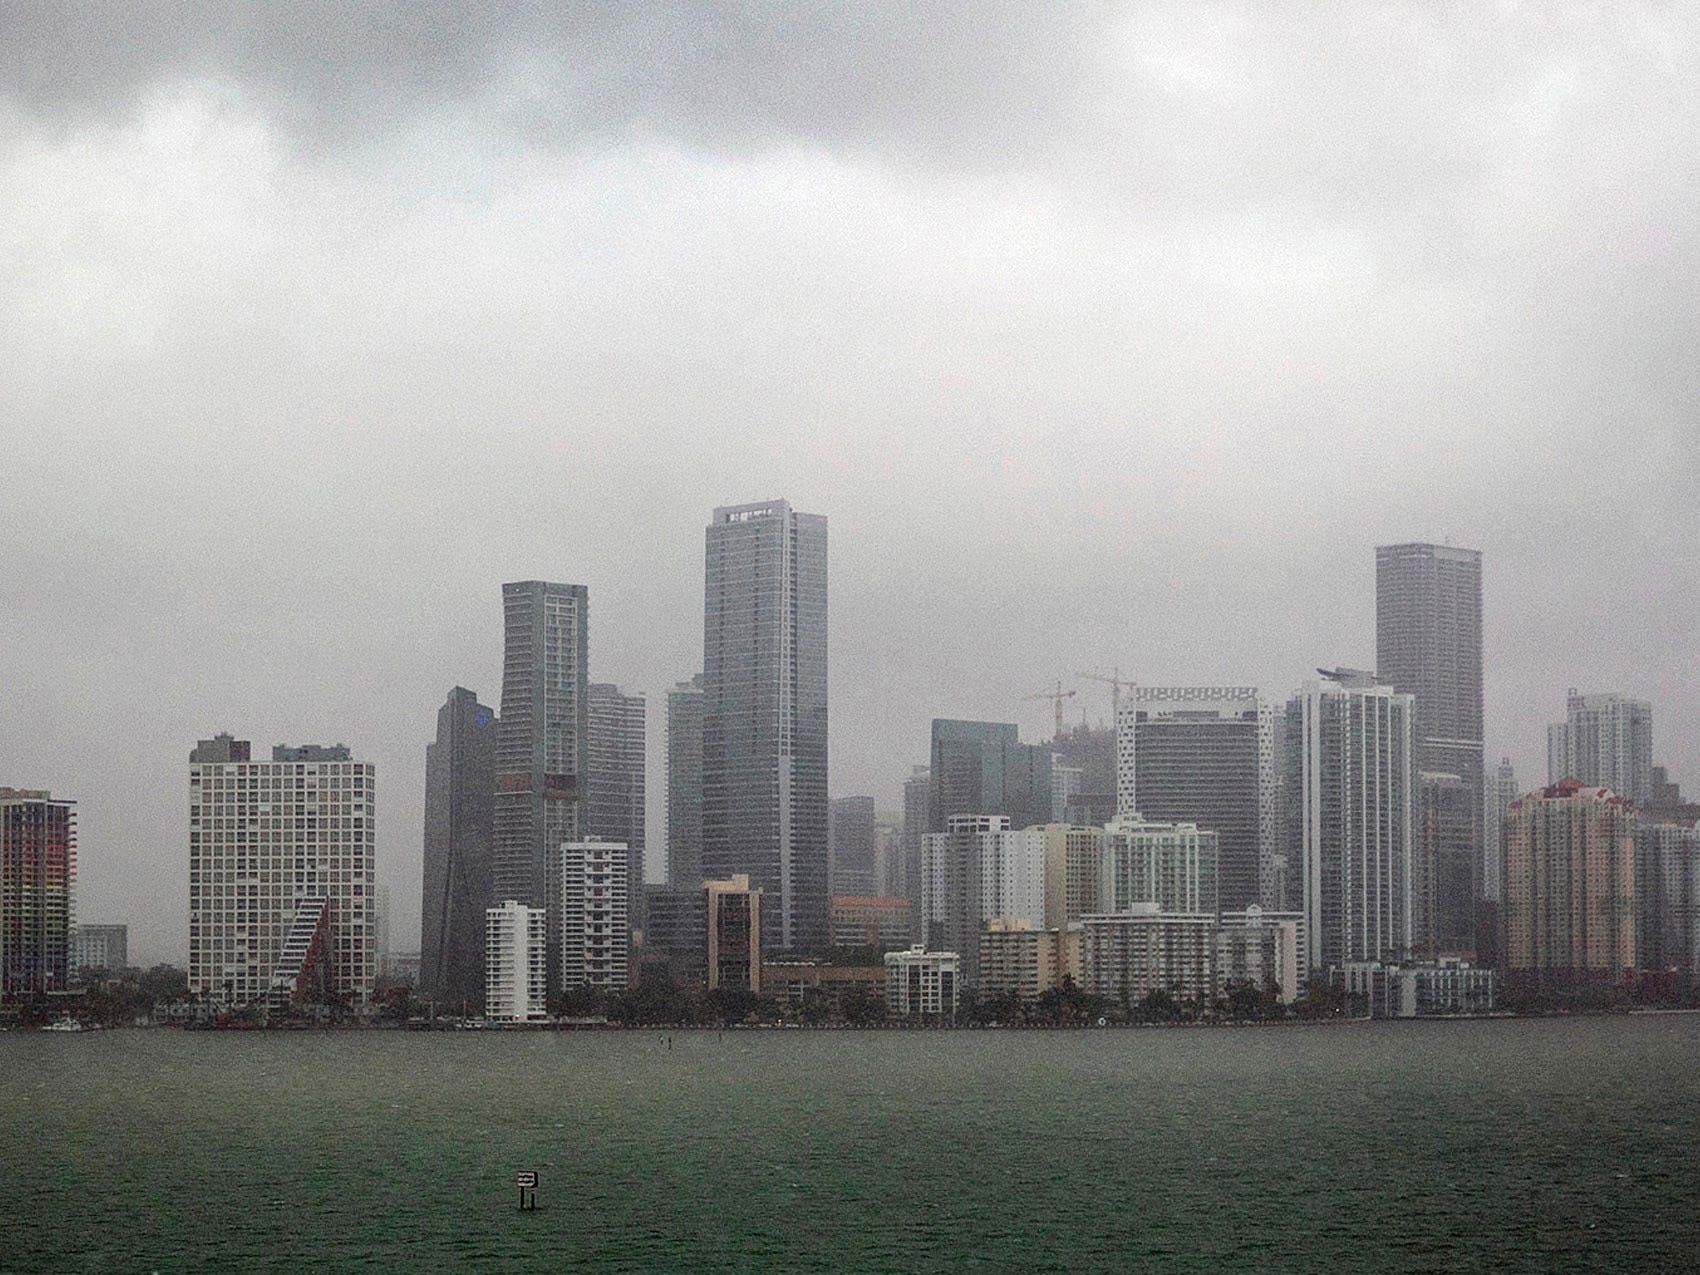 Rain falls on the Miami skyline, Monday, Sept. 3, 2018. Tropical Storm Gordon lashed South Florida with heavy rains and high winds on Monday, forcing holiday beachgoers to drier ground. Weather forecasters said the storm could strengthen to near-hurricane force by the time it hits the  Gulf Coast.